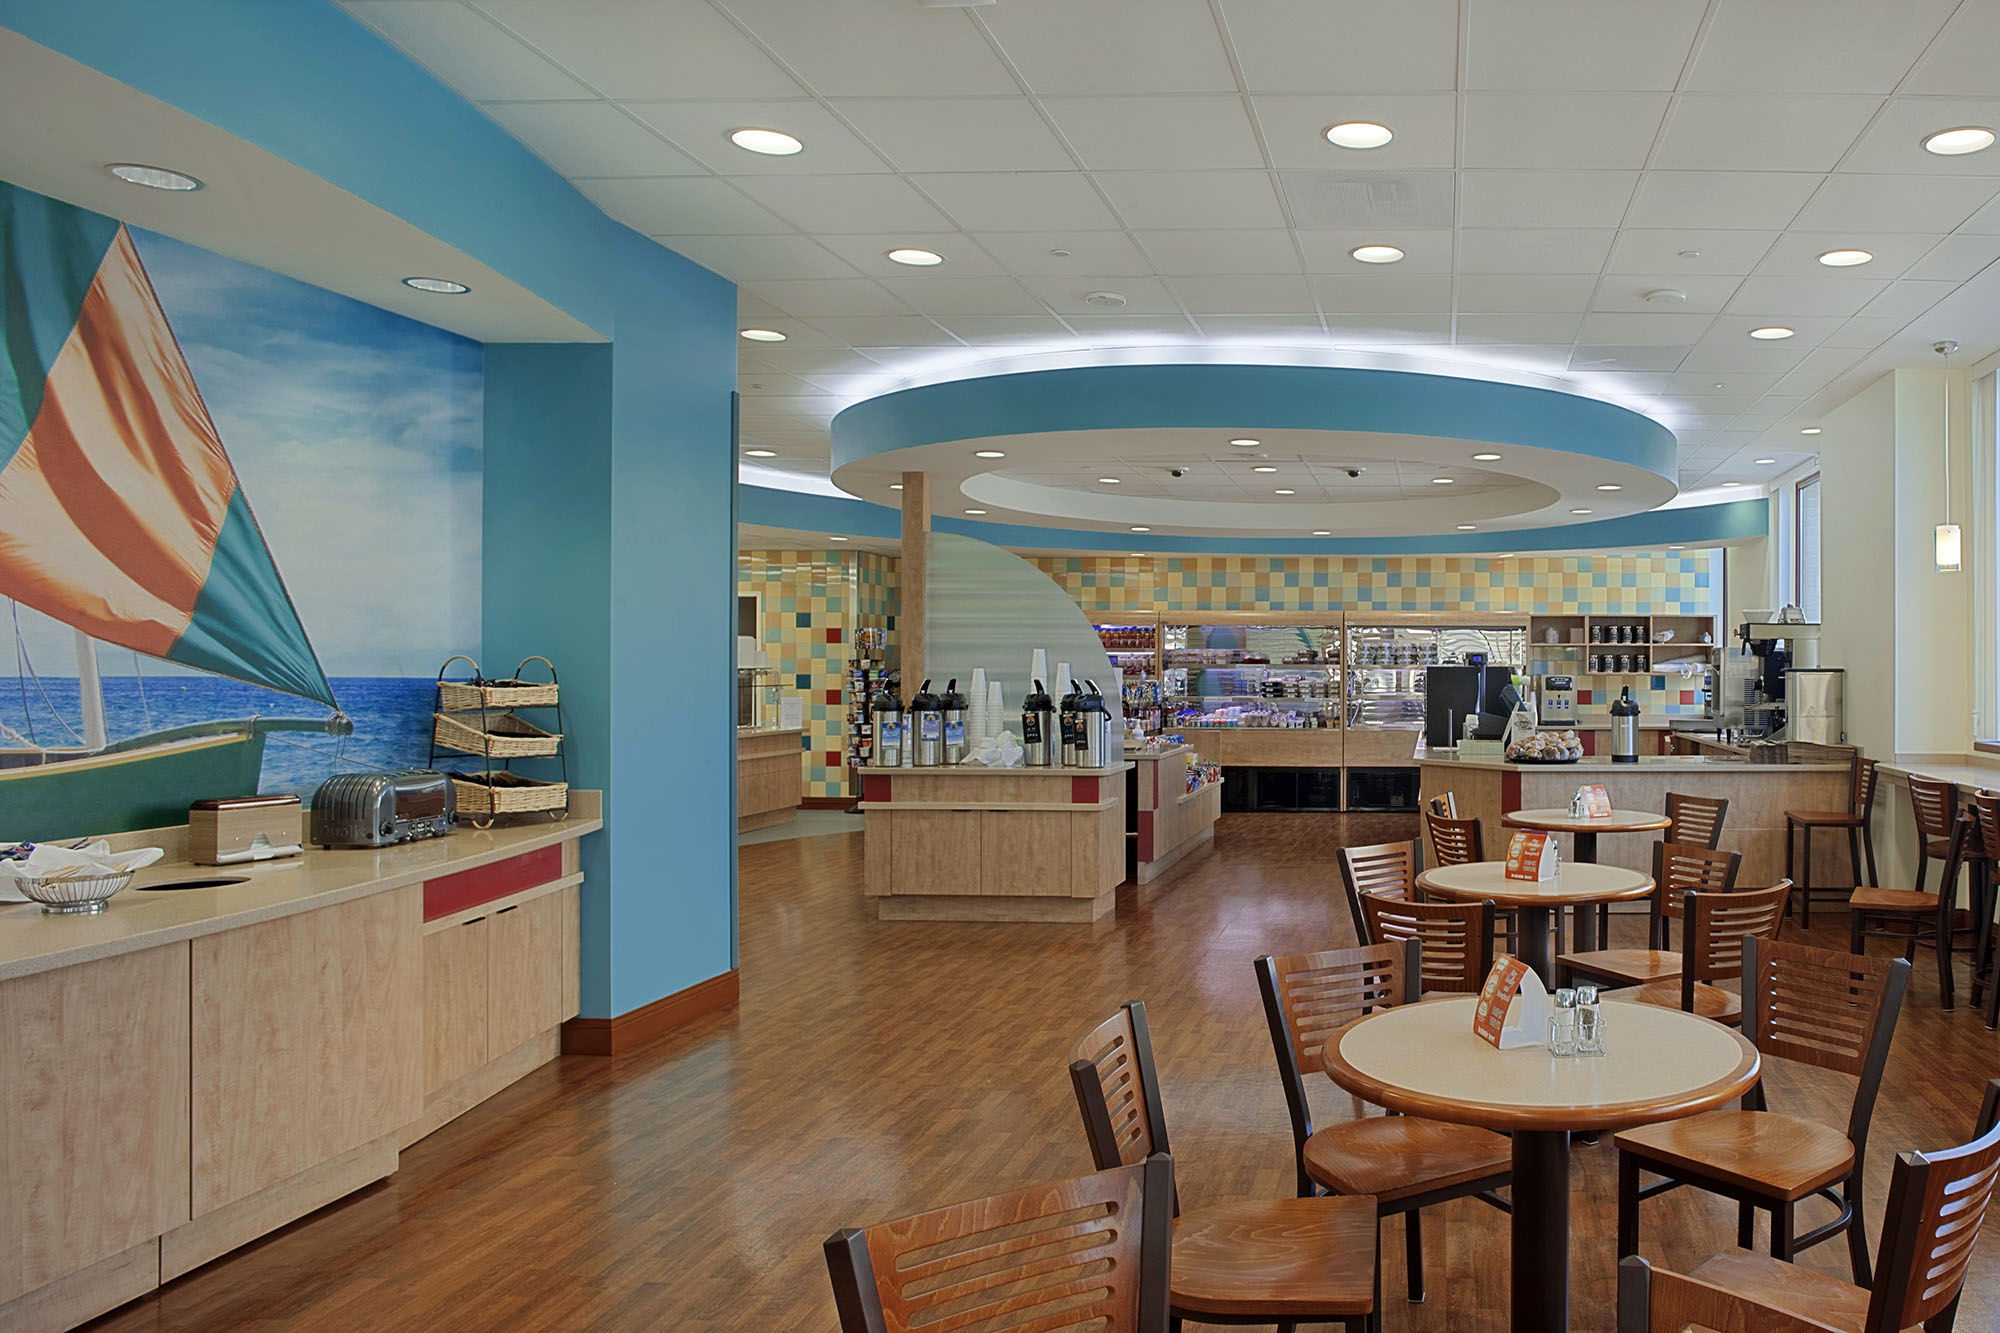 FOOD SERVICE    CRGA has extensive experience with food service design within healthcare and senior living facilities. We recognize the importance of creating a welcoming environment for patients, residents, families and staff that provides nourishment through quality foods and offers a relaxing space to reflect and re-energize during one's time in the space.